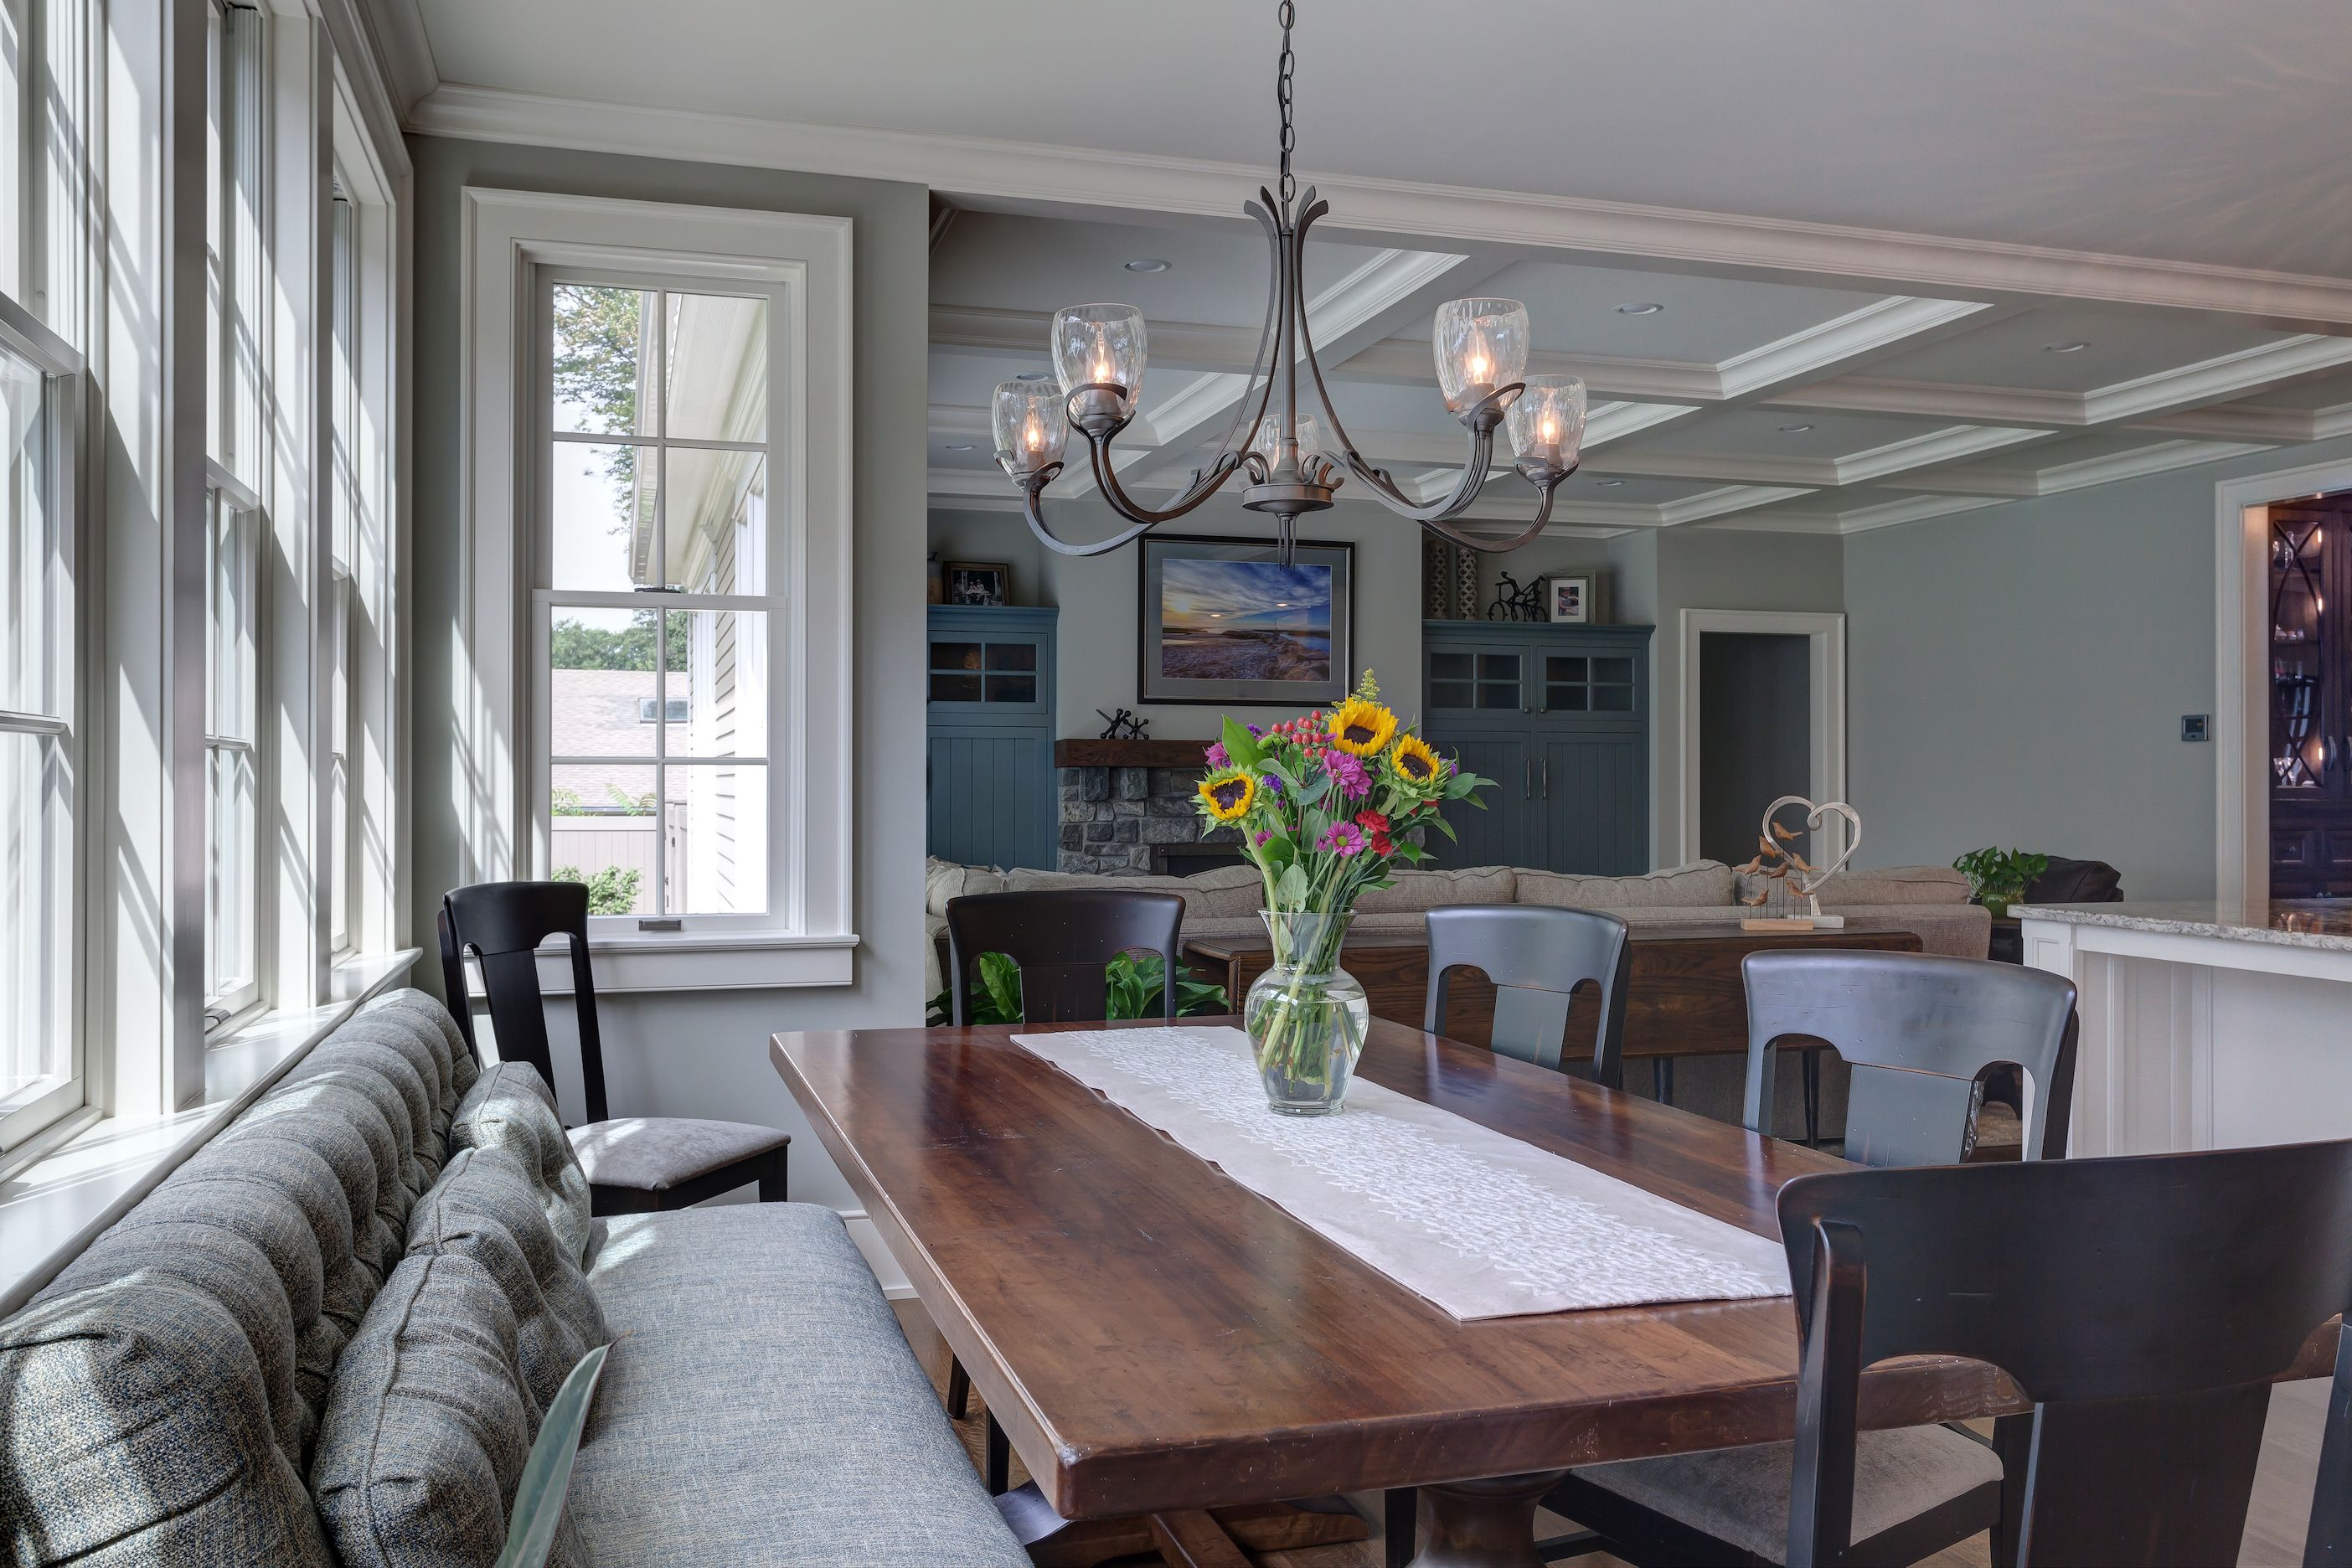 Home Home, Traditional house, Rustic dining table